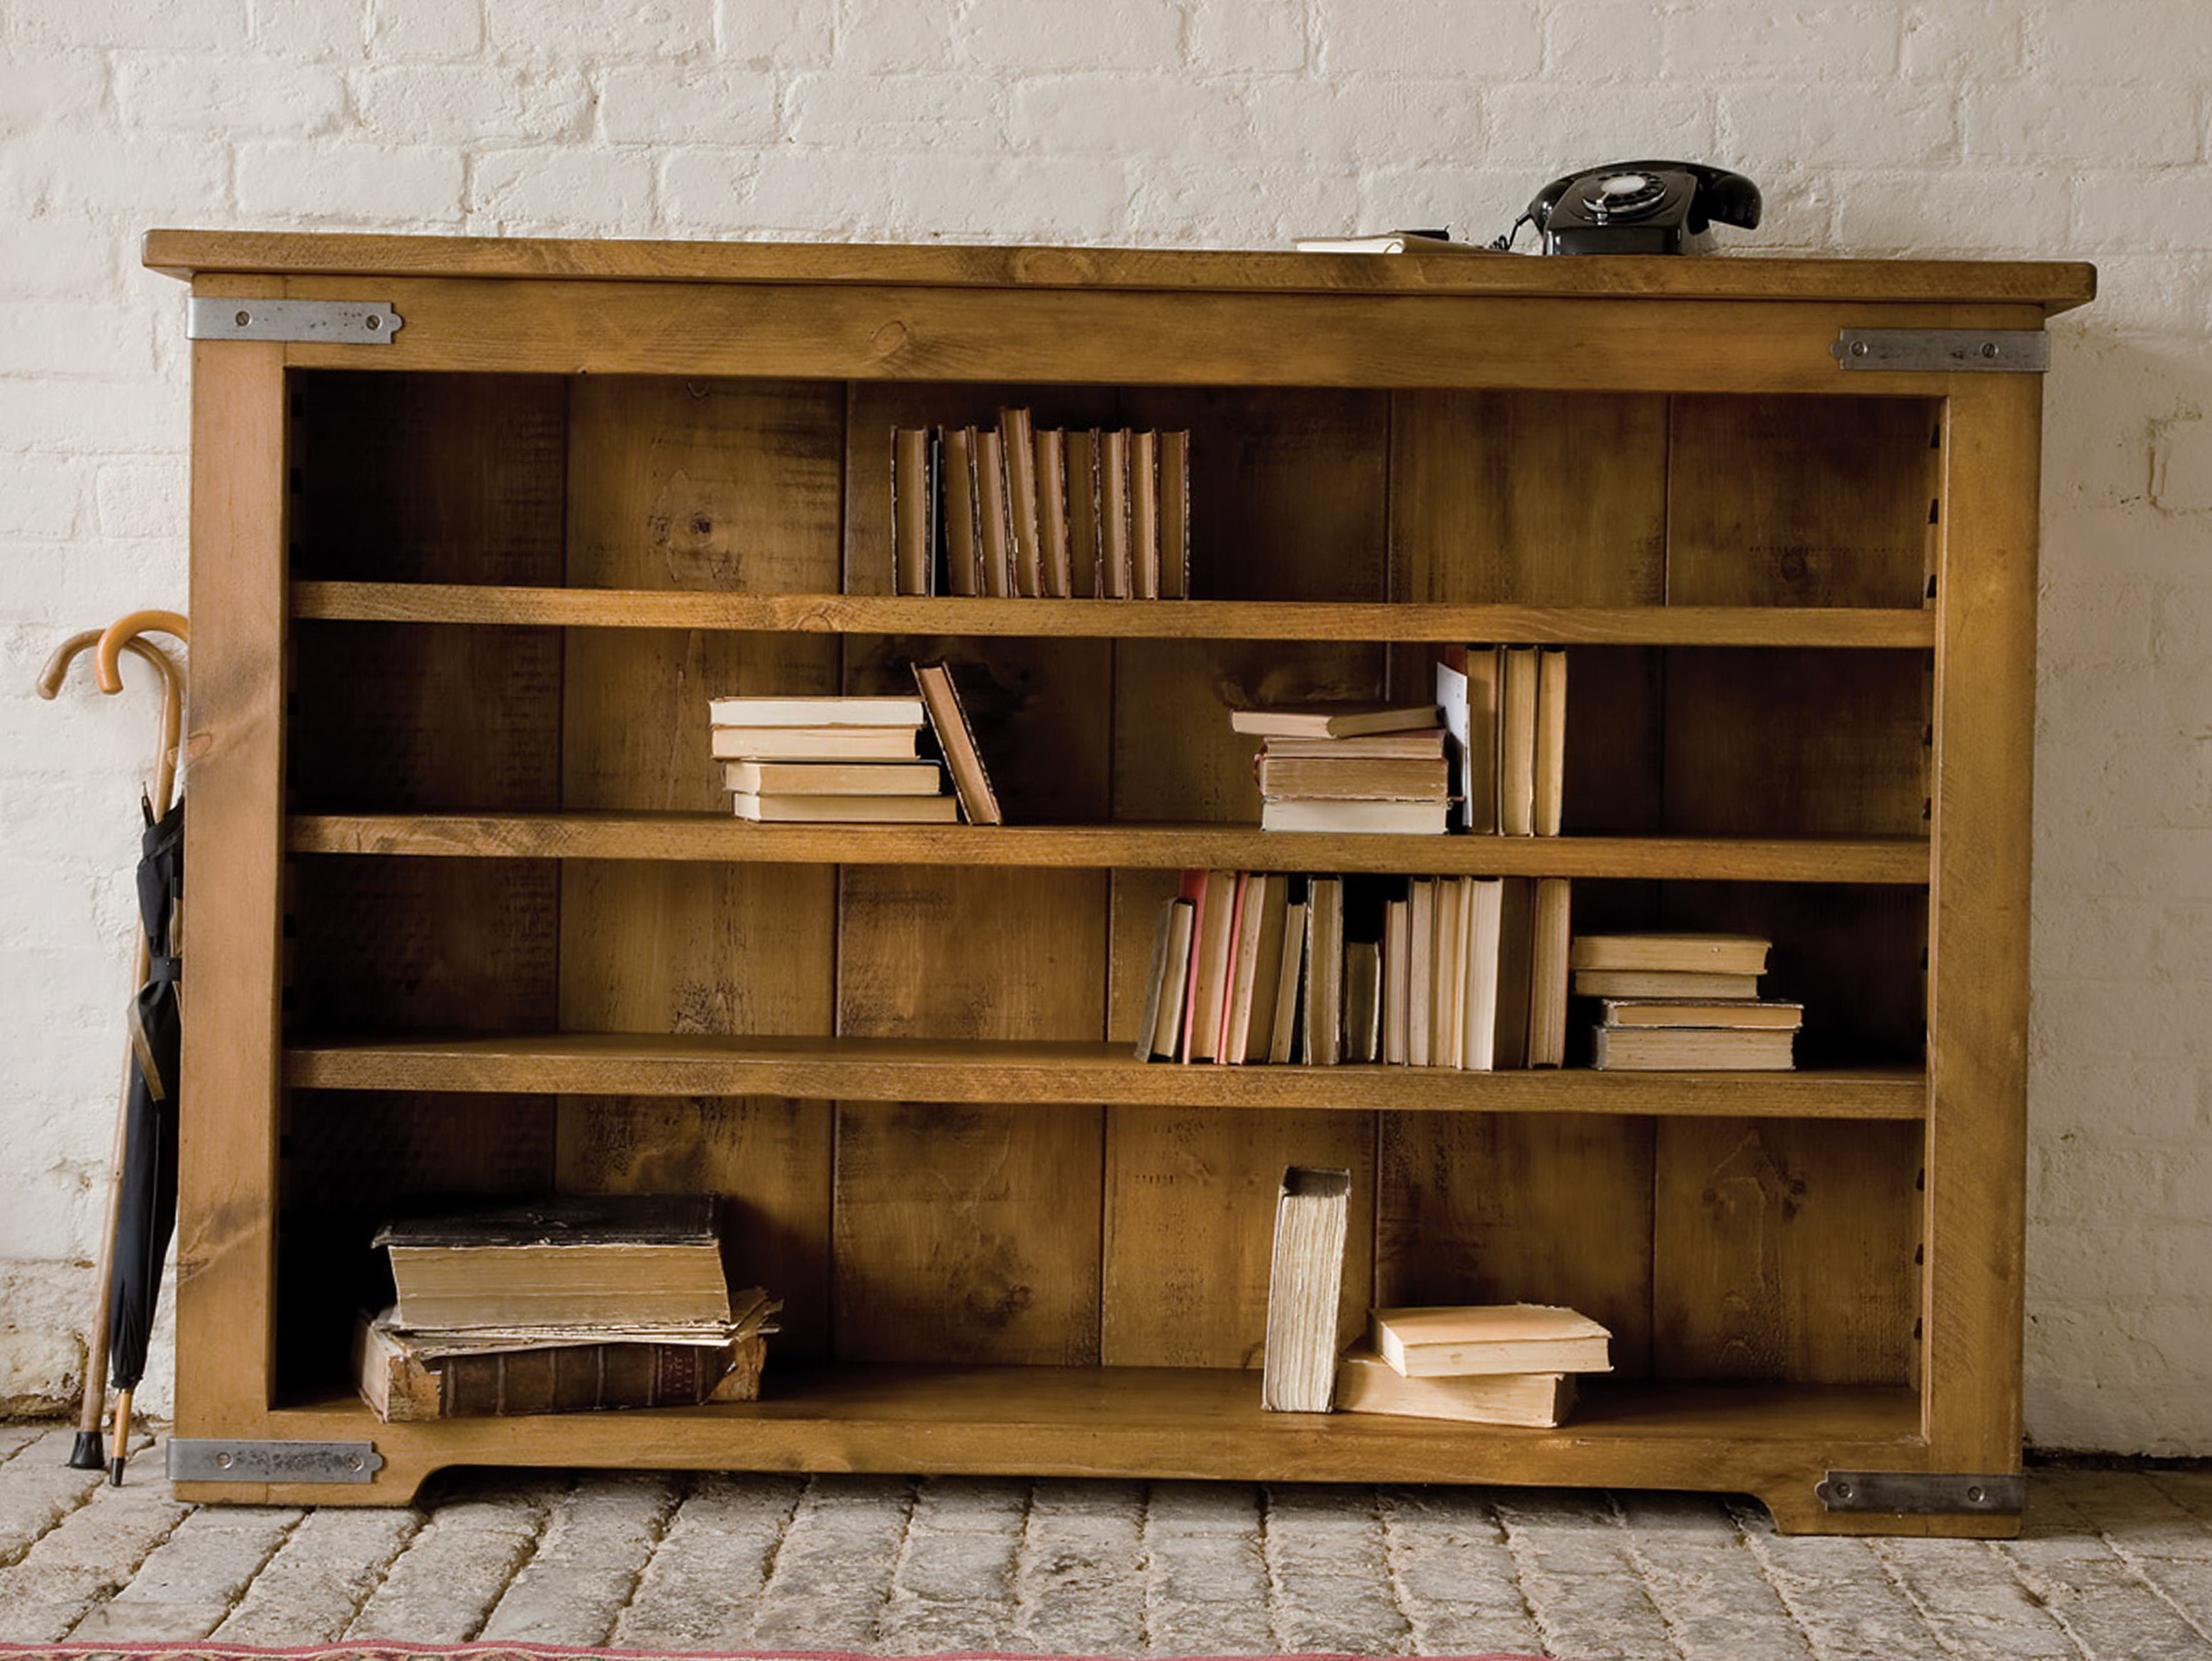 best bookcases xfile ideas mission book cases uncategorized bookcase style concept of for with wood oak and pic furniture sale solid